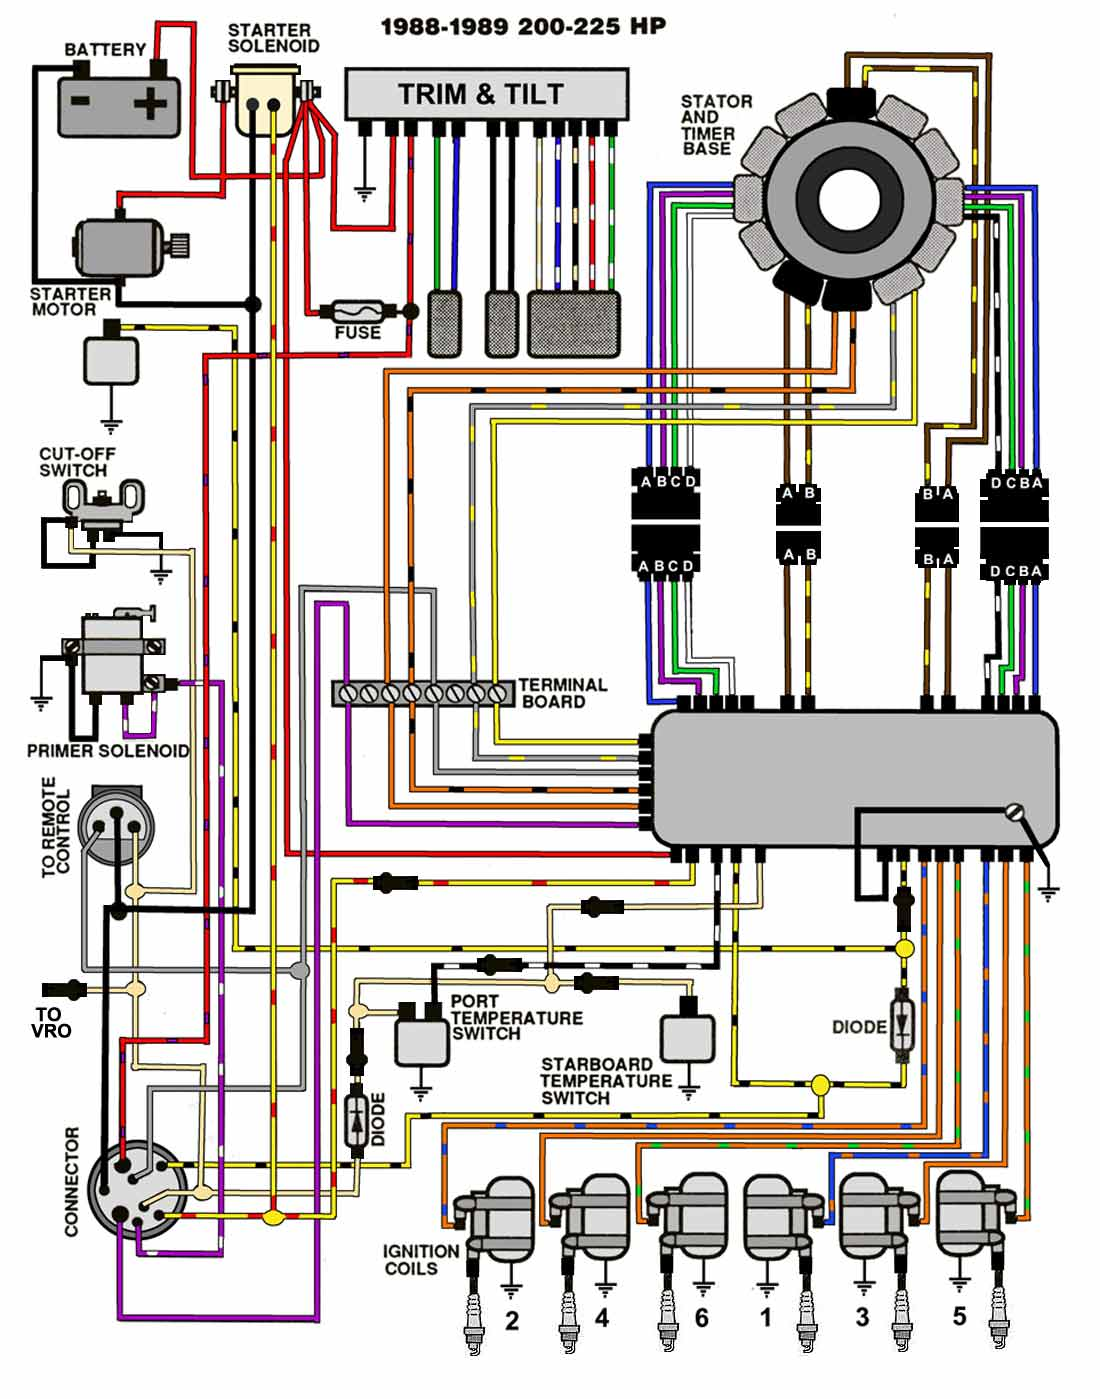 2000 Evinrude Ficht Wiring Diagram Circuit Connection Diagram \u2022 1989  Evinrude 9 9 Wiring Diagram